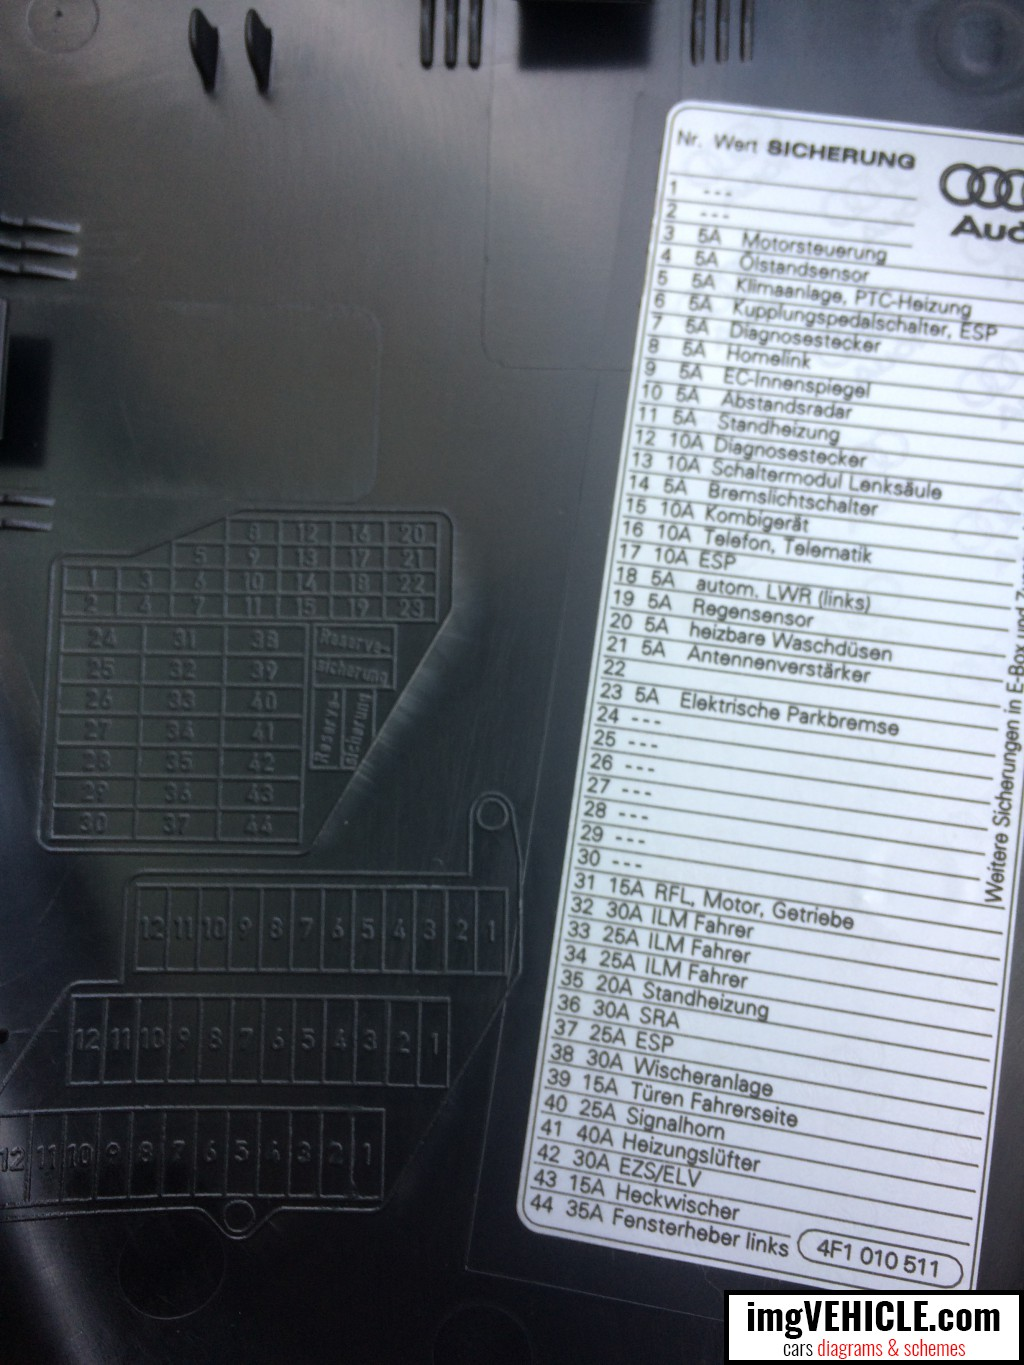 Audi A6 C6 Fuse Box Diagrams Schemes Mazda 2 2009 Dash Panel Diagram